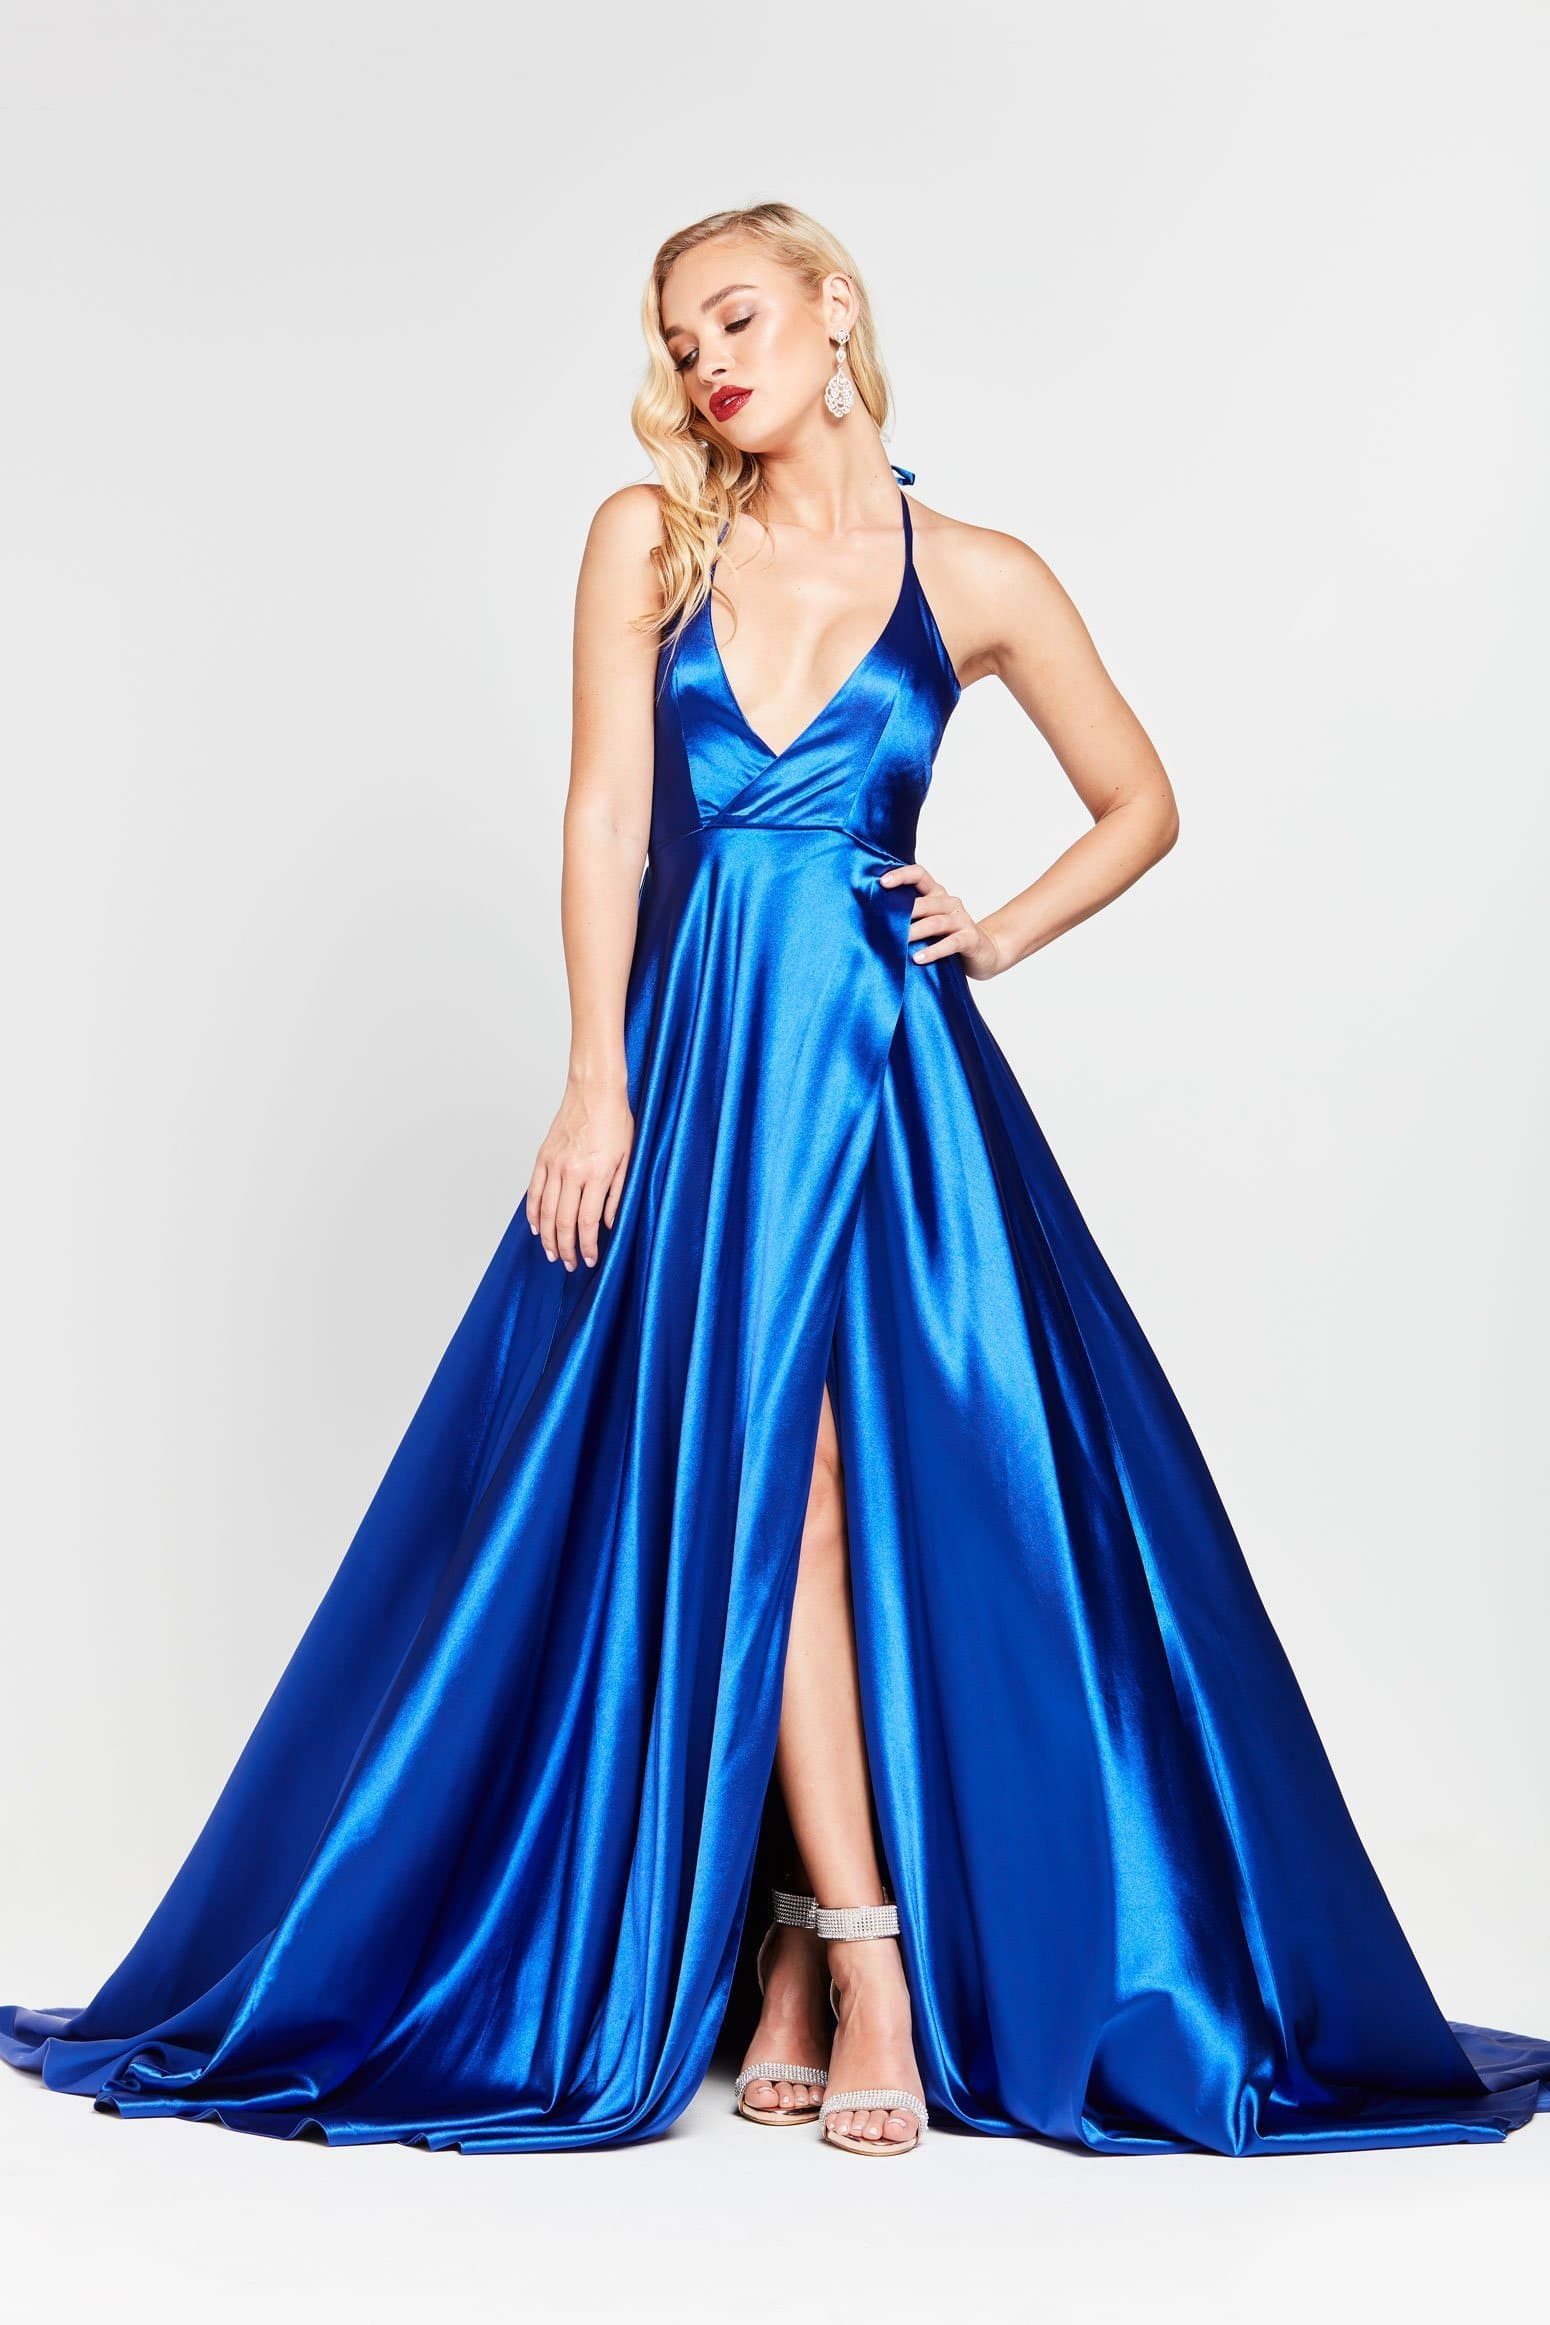 A&N Amani - Royal Blue Satin Gown with Side Slit and Low Back